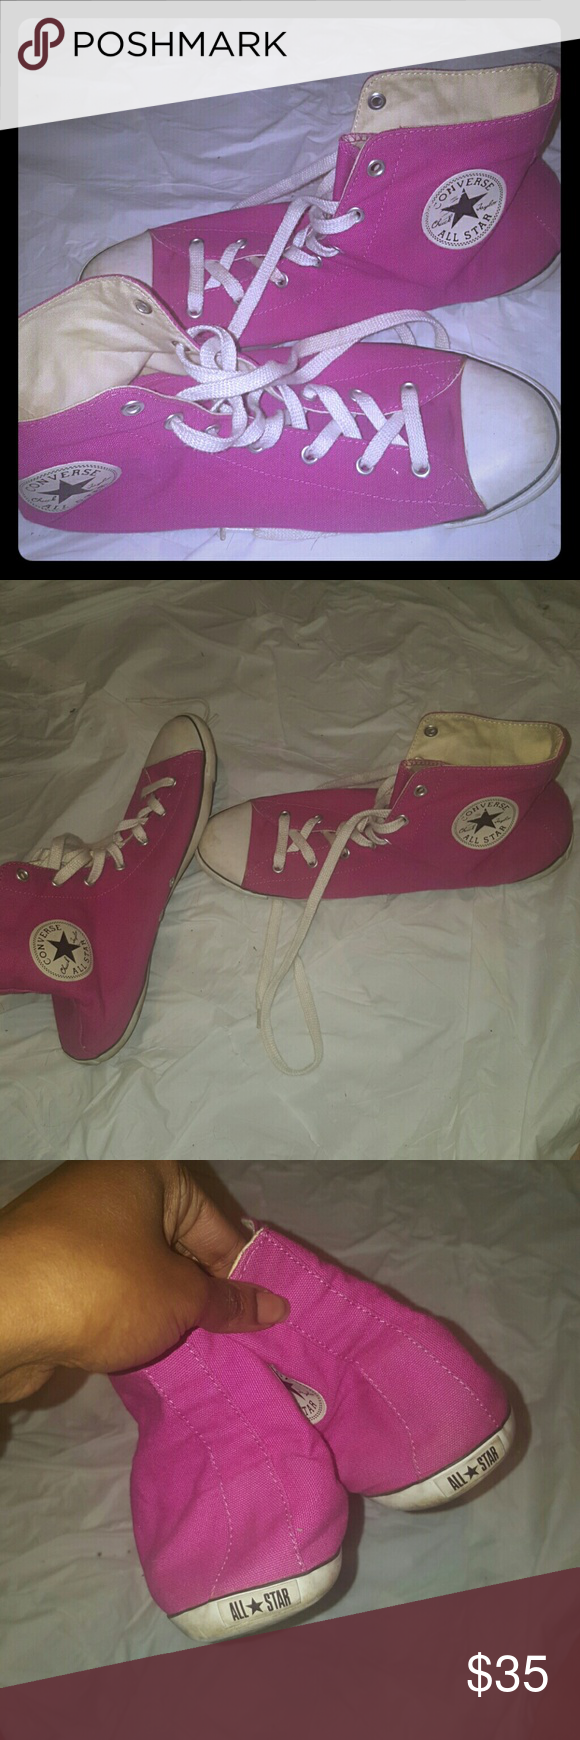 Converse pink Ladies size 11 few scuffs some wear but good condition color Converse Shoes Sneakers